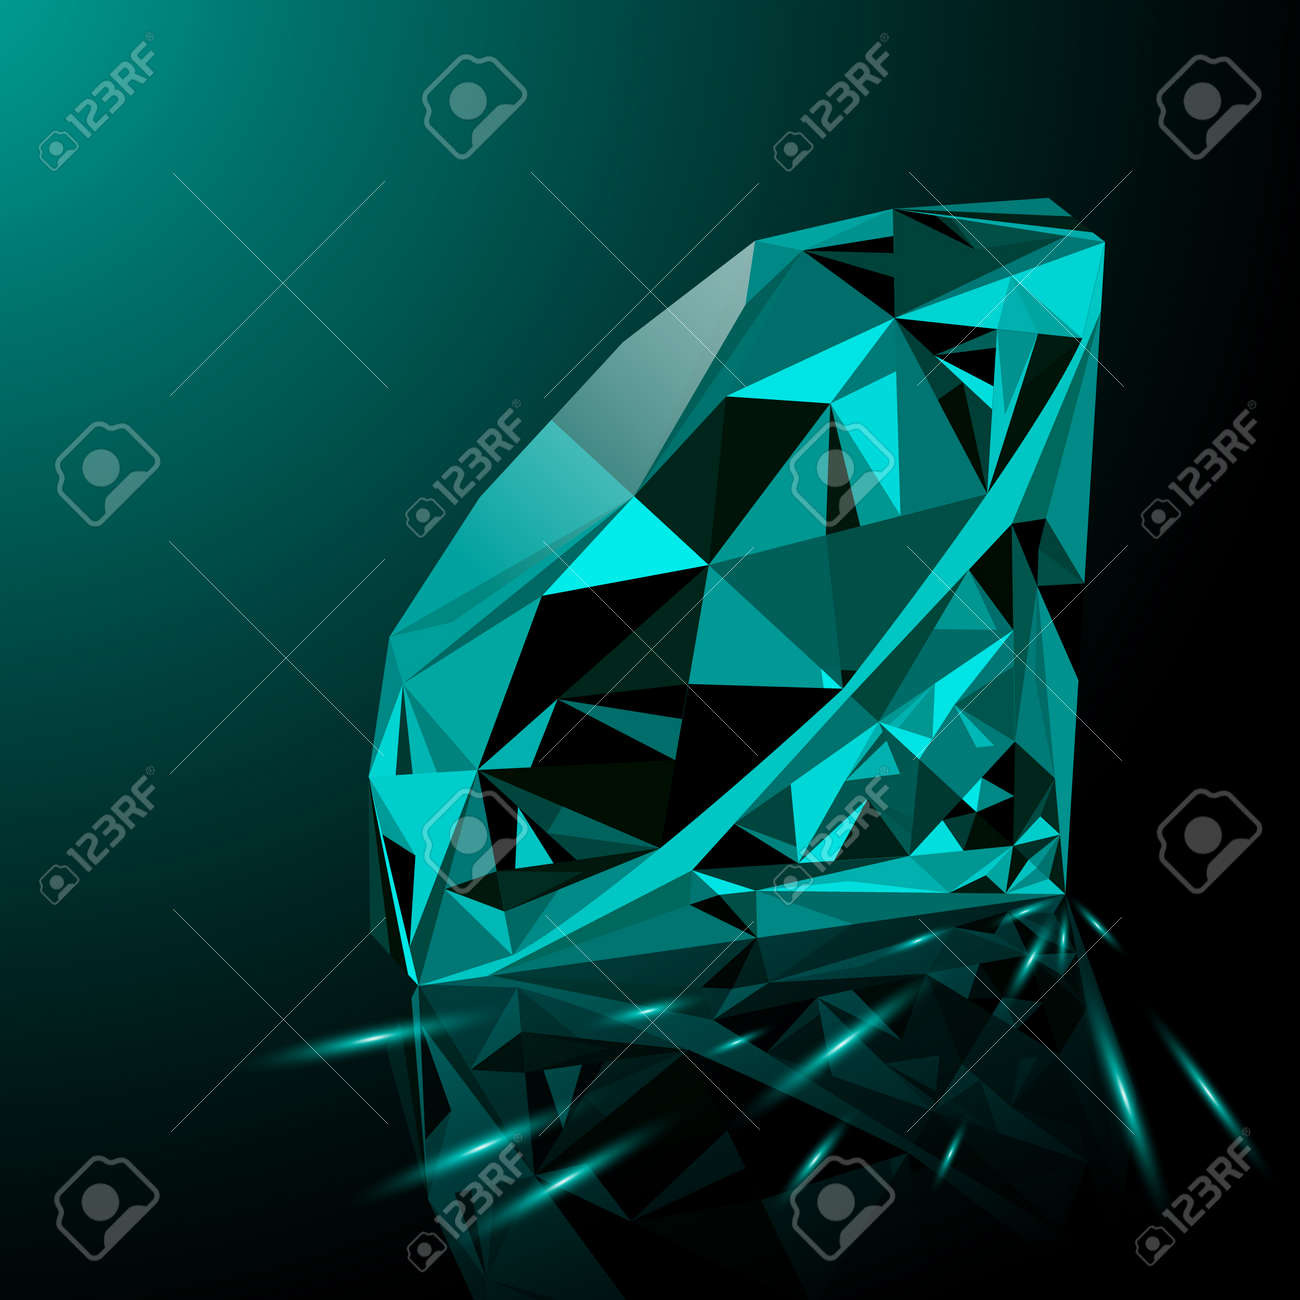 emerald up on online stock jewel background picture close dark dof a shallow